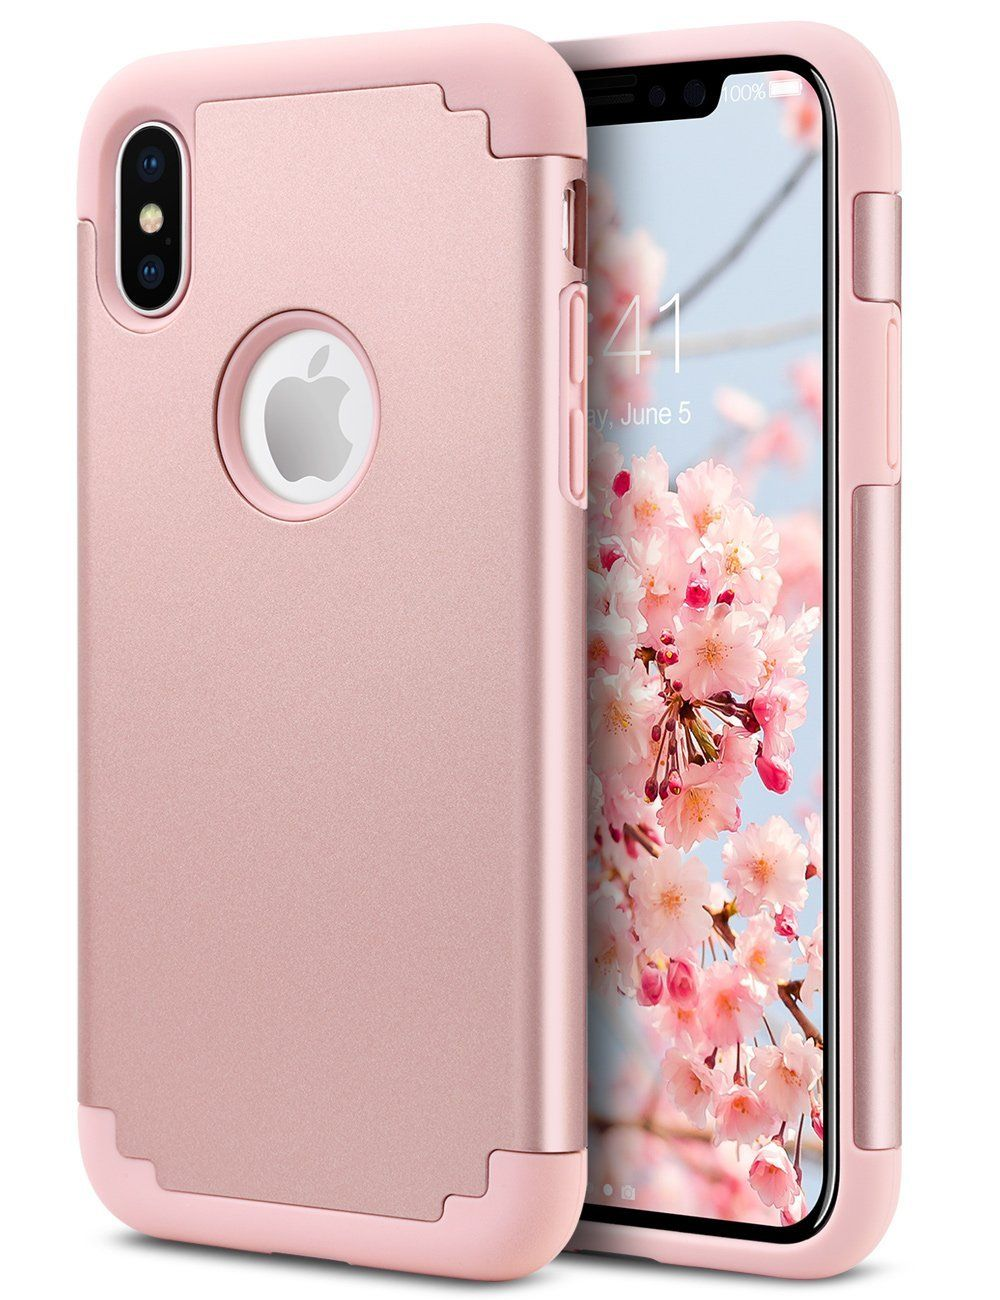 Iphone X Case Pretty Iphone X Case For Girls Ulak Slim Fit Protective Hybrid Flexible Soft Rubber Silico Rose Gold Iphone Case Iphone Iphone Cases For Girls